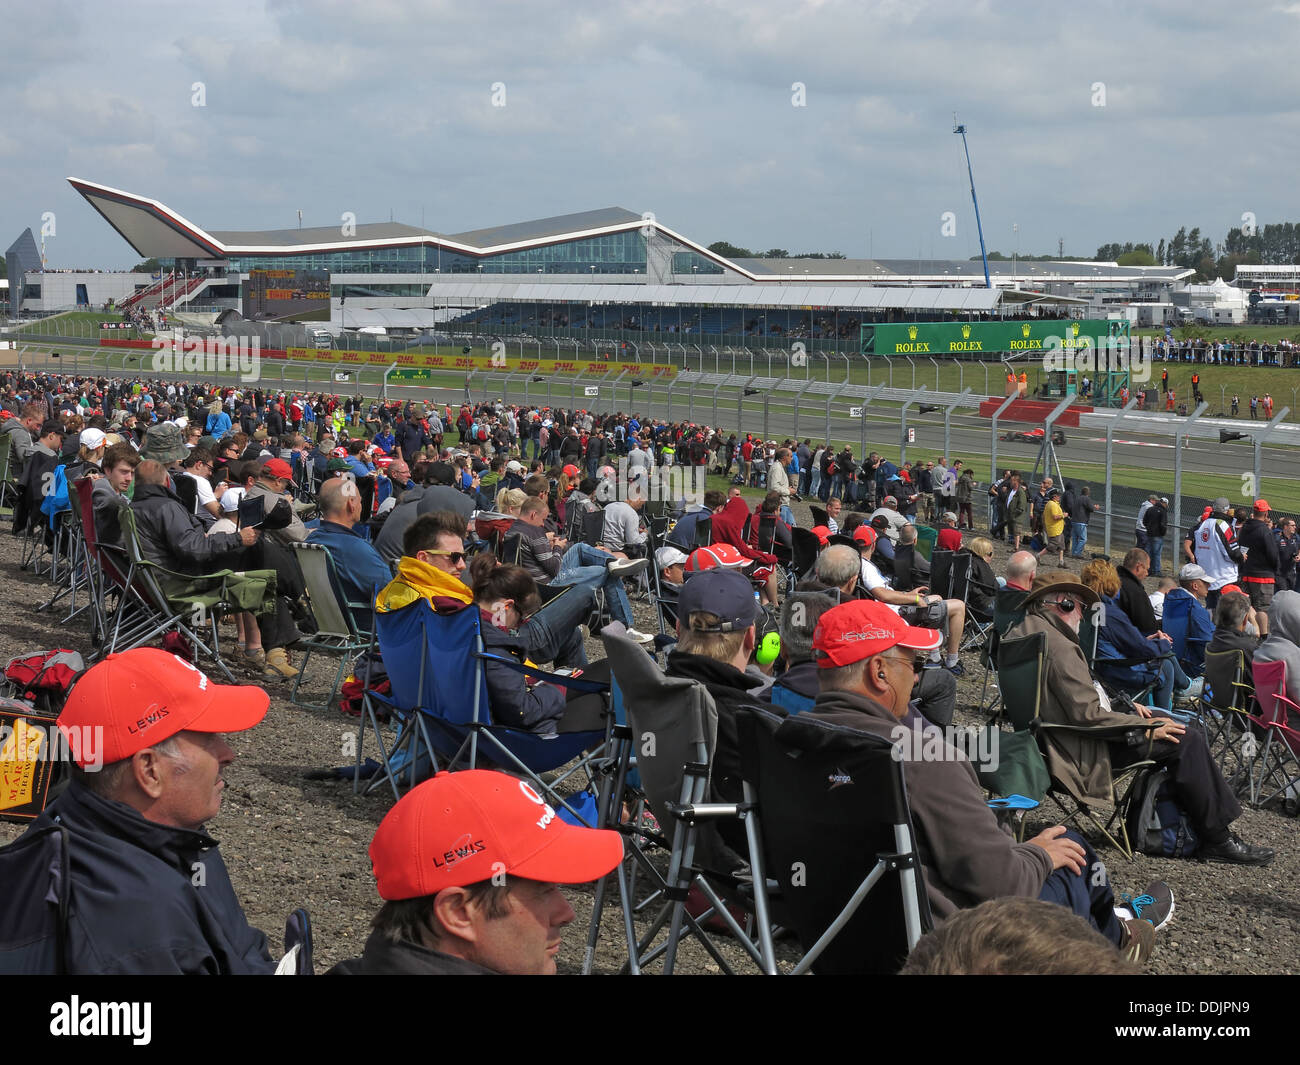 England,UK,Great,Britain,motor,racing,sport,motorsport,camping,stand,stands,spectator,watching,watcher,ticket,tickets,June,2013,Northampton,Northamptonshire,motorracing,event,circuit,Formula,One,World,Championship,spectator,trackside,track,side,campers,seated,waiting,for,the,race,vodafone,redhat,hat,Gotonysmith,events,prestige,prestigious,Lewis,Hamilton,NN12,8TN,NN128TN,hats,wait,patiently,practice,day,Saturday,Friday,Sunday,race,main,Buy Pictures of,Buy Images Of